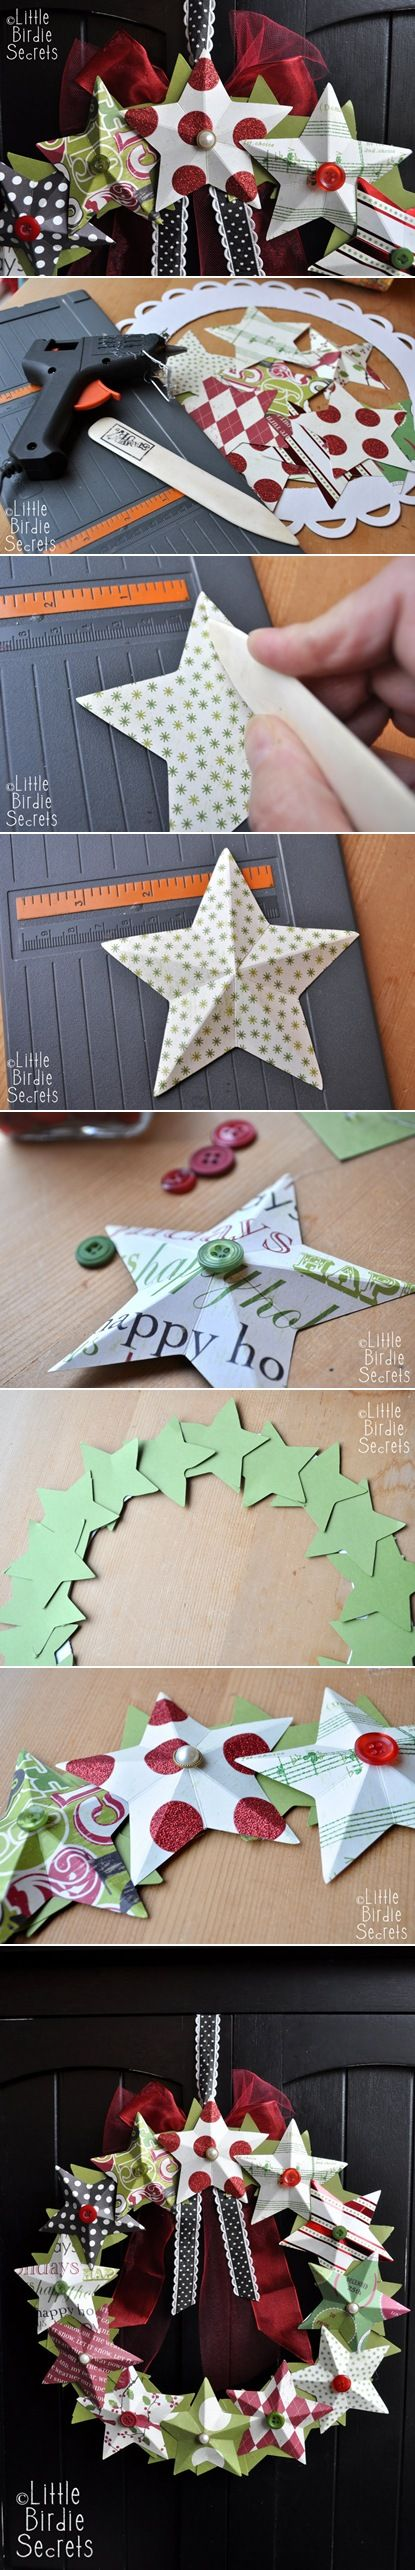 Stampin' Up! Christmas Star Wreath Tutorial